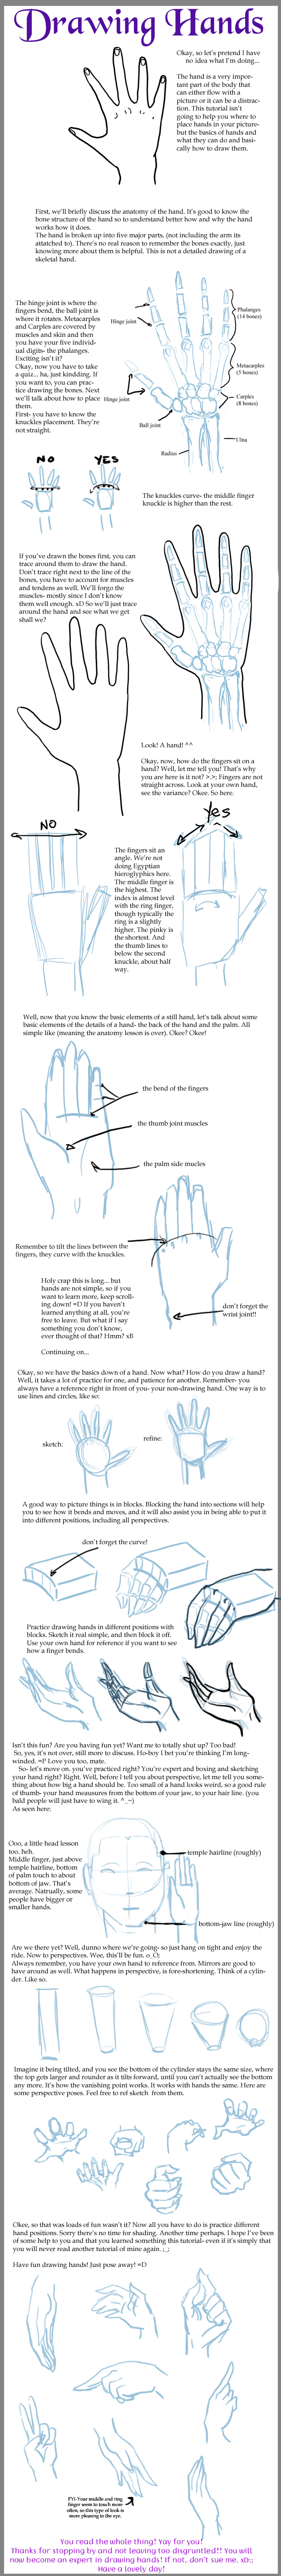 -Hands Tutorial- by odduckoasis